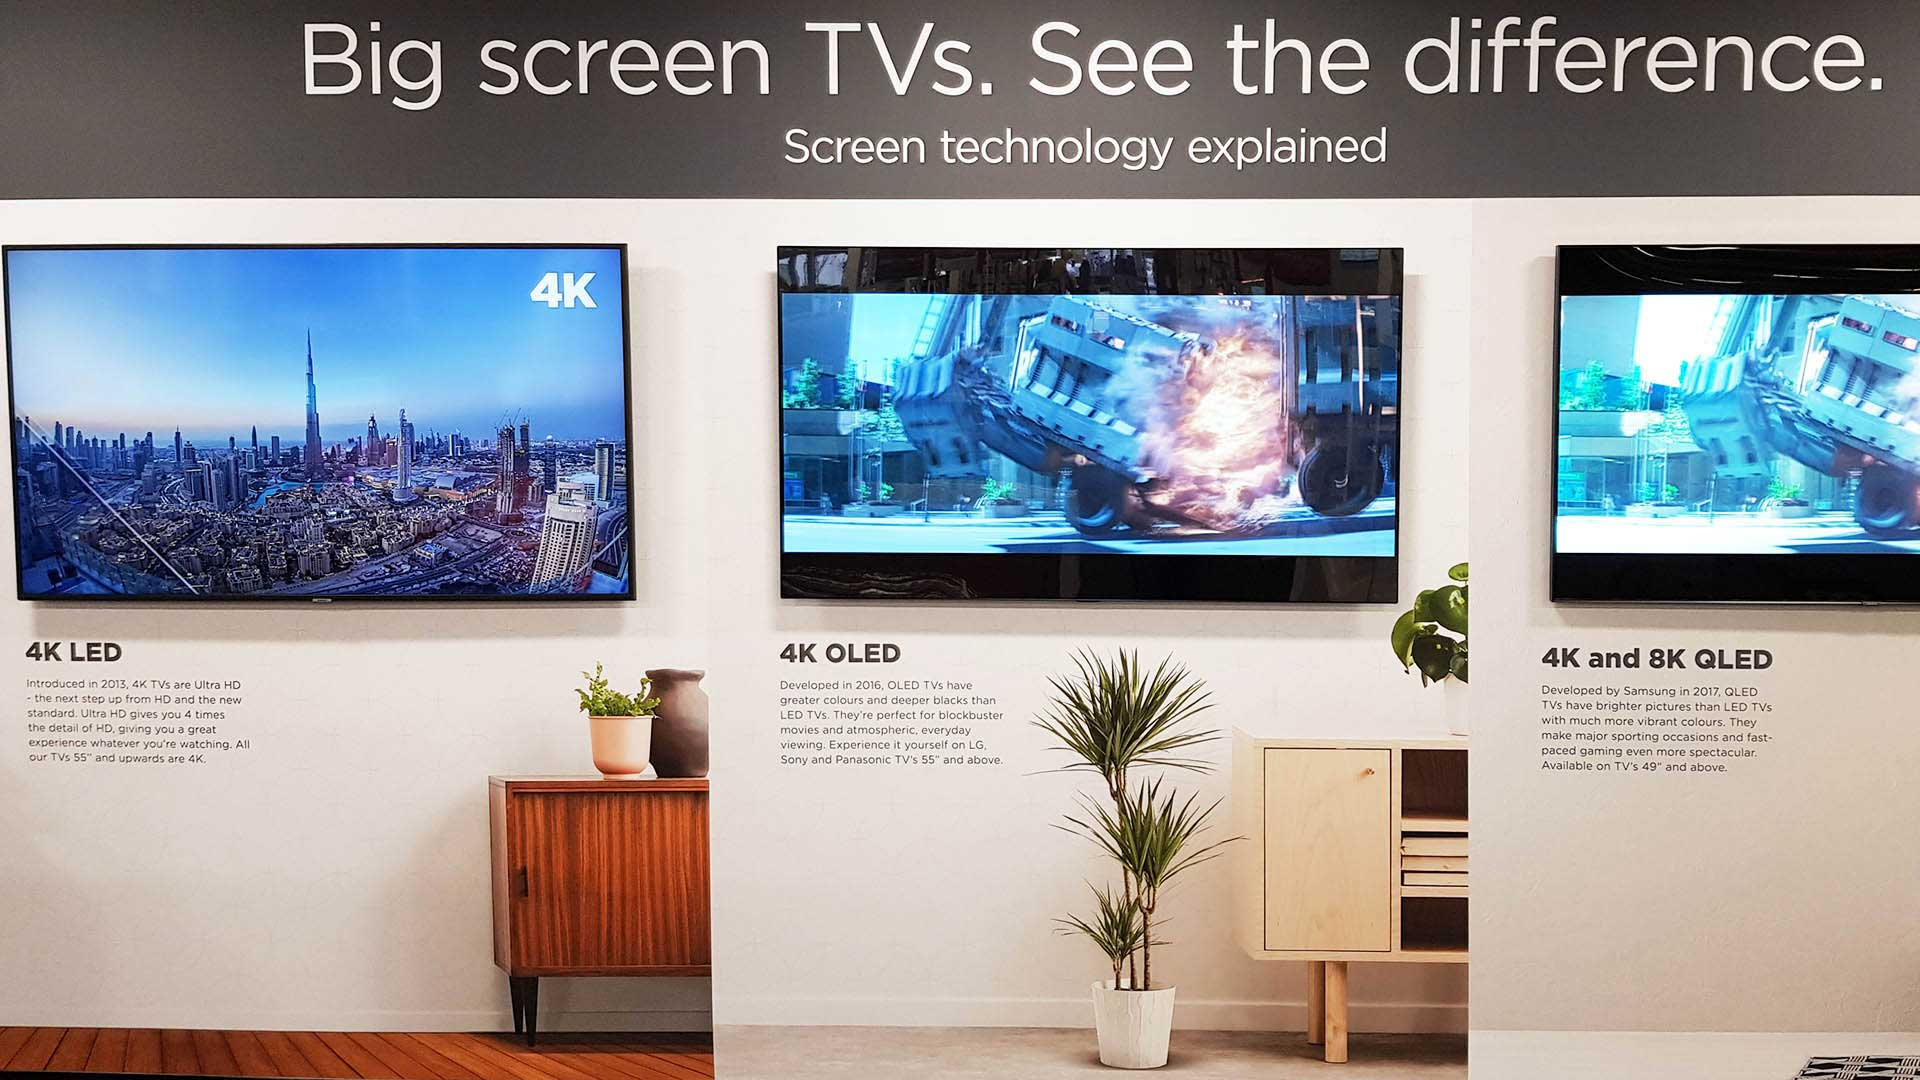 Which 4K Ultra HD Smart TV Apple Samsung Sony LG or Projector